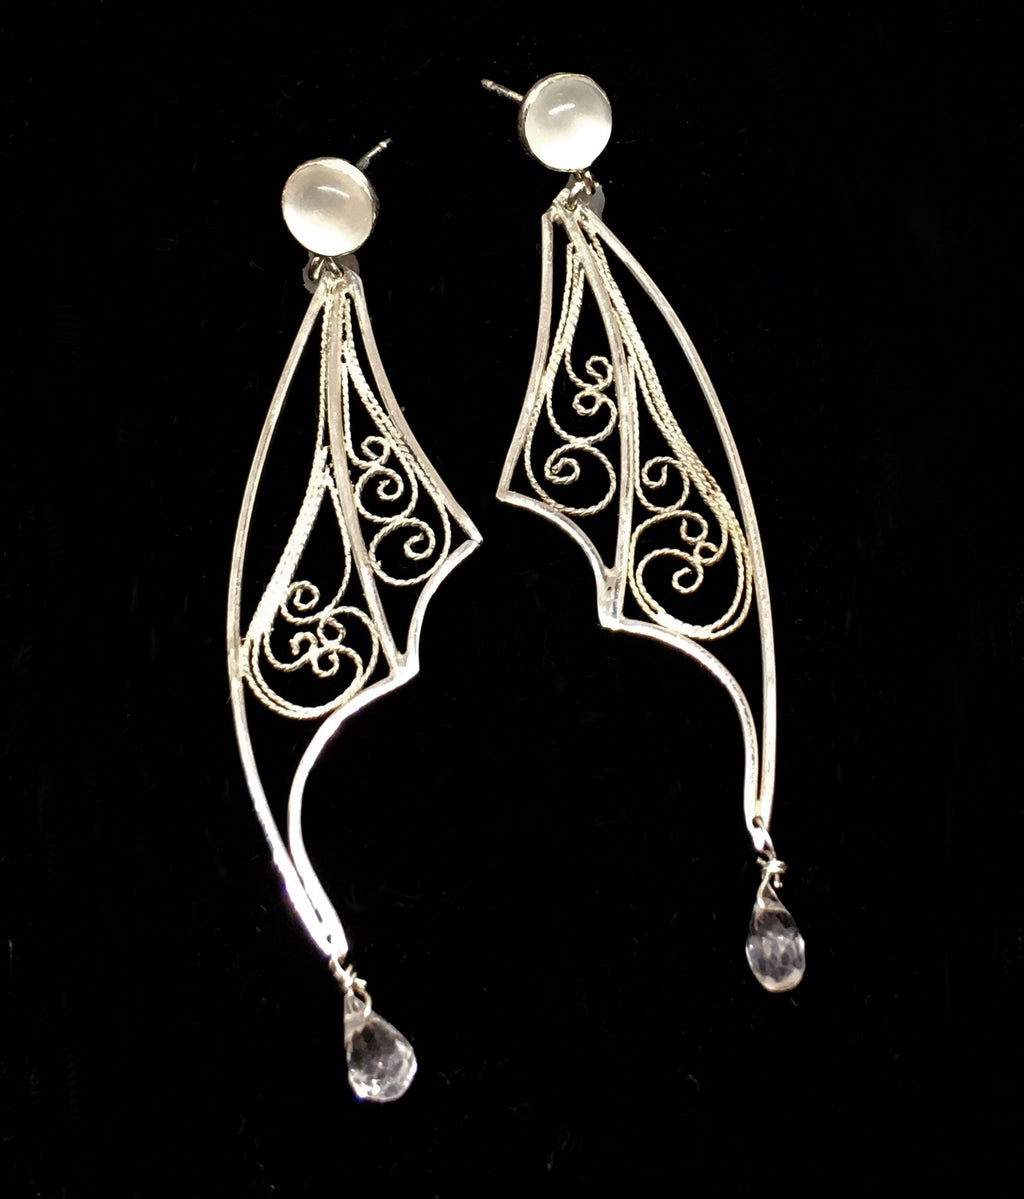 handmade silver filigree earrings with moonstone and white topaz